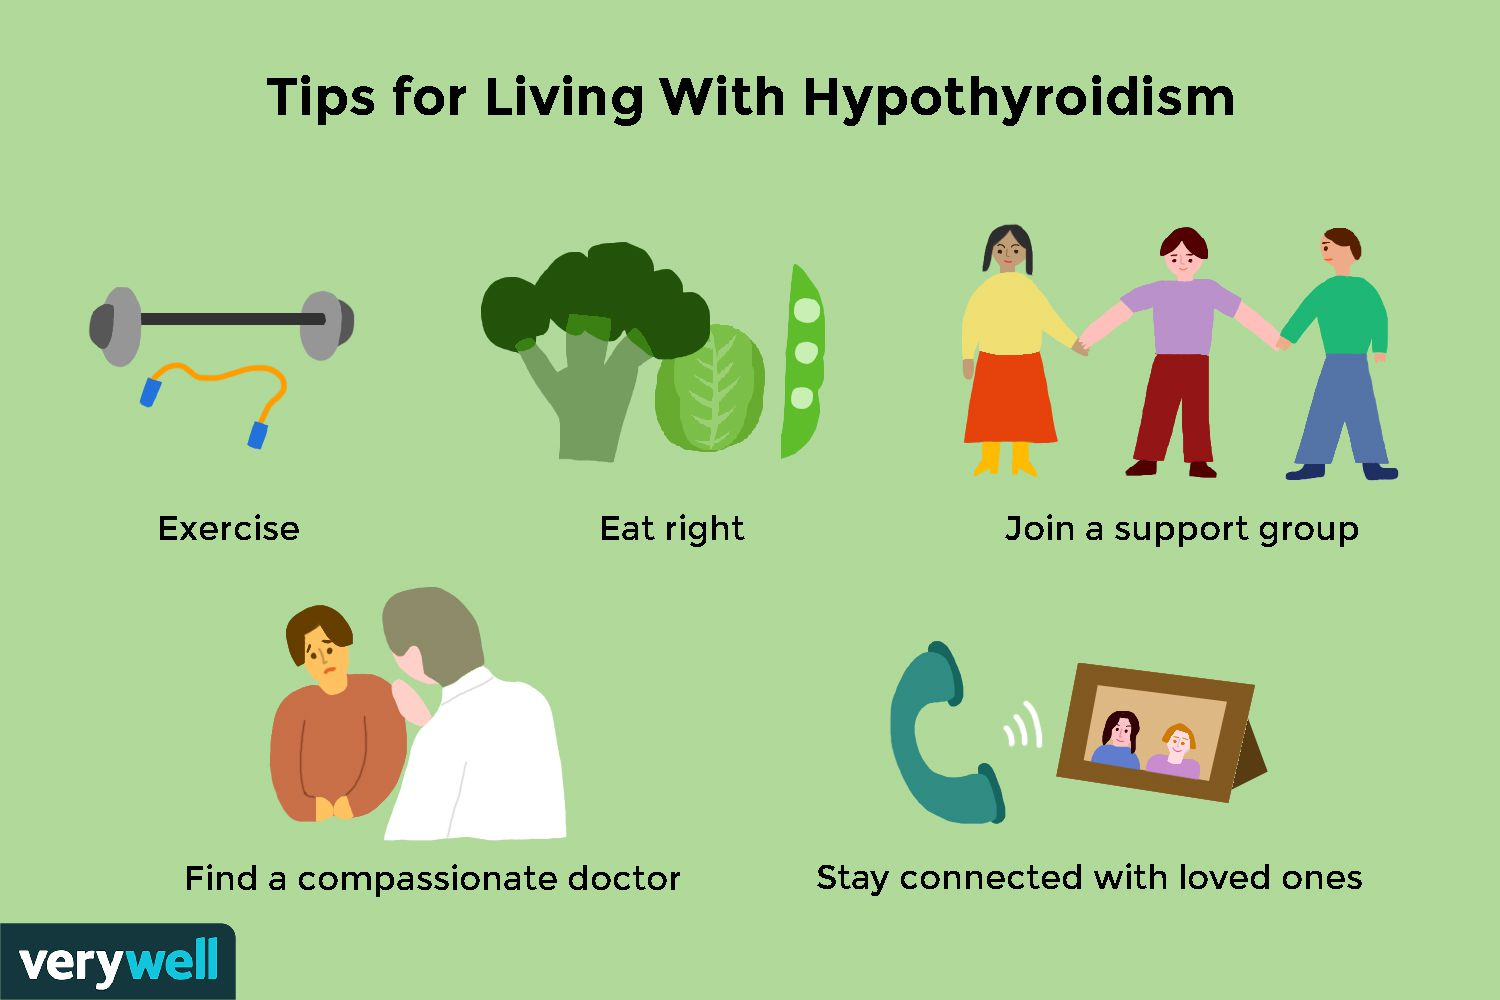 Living With Hypothyroidism